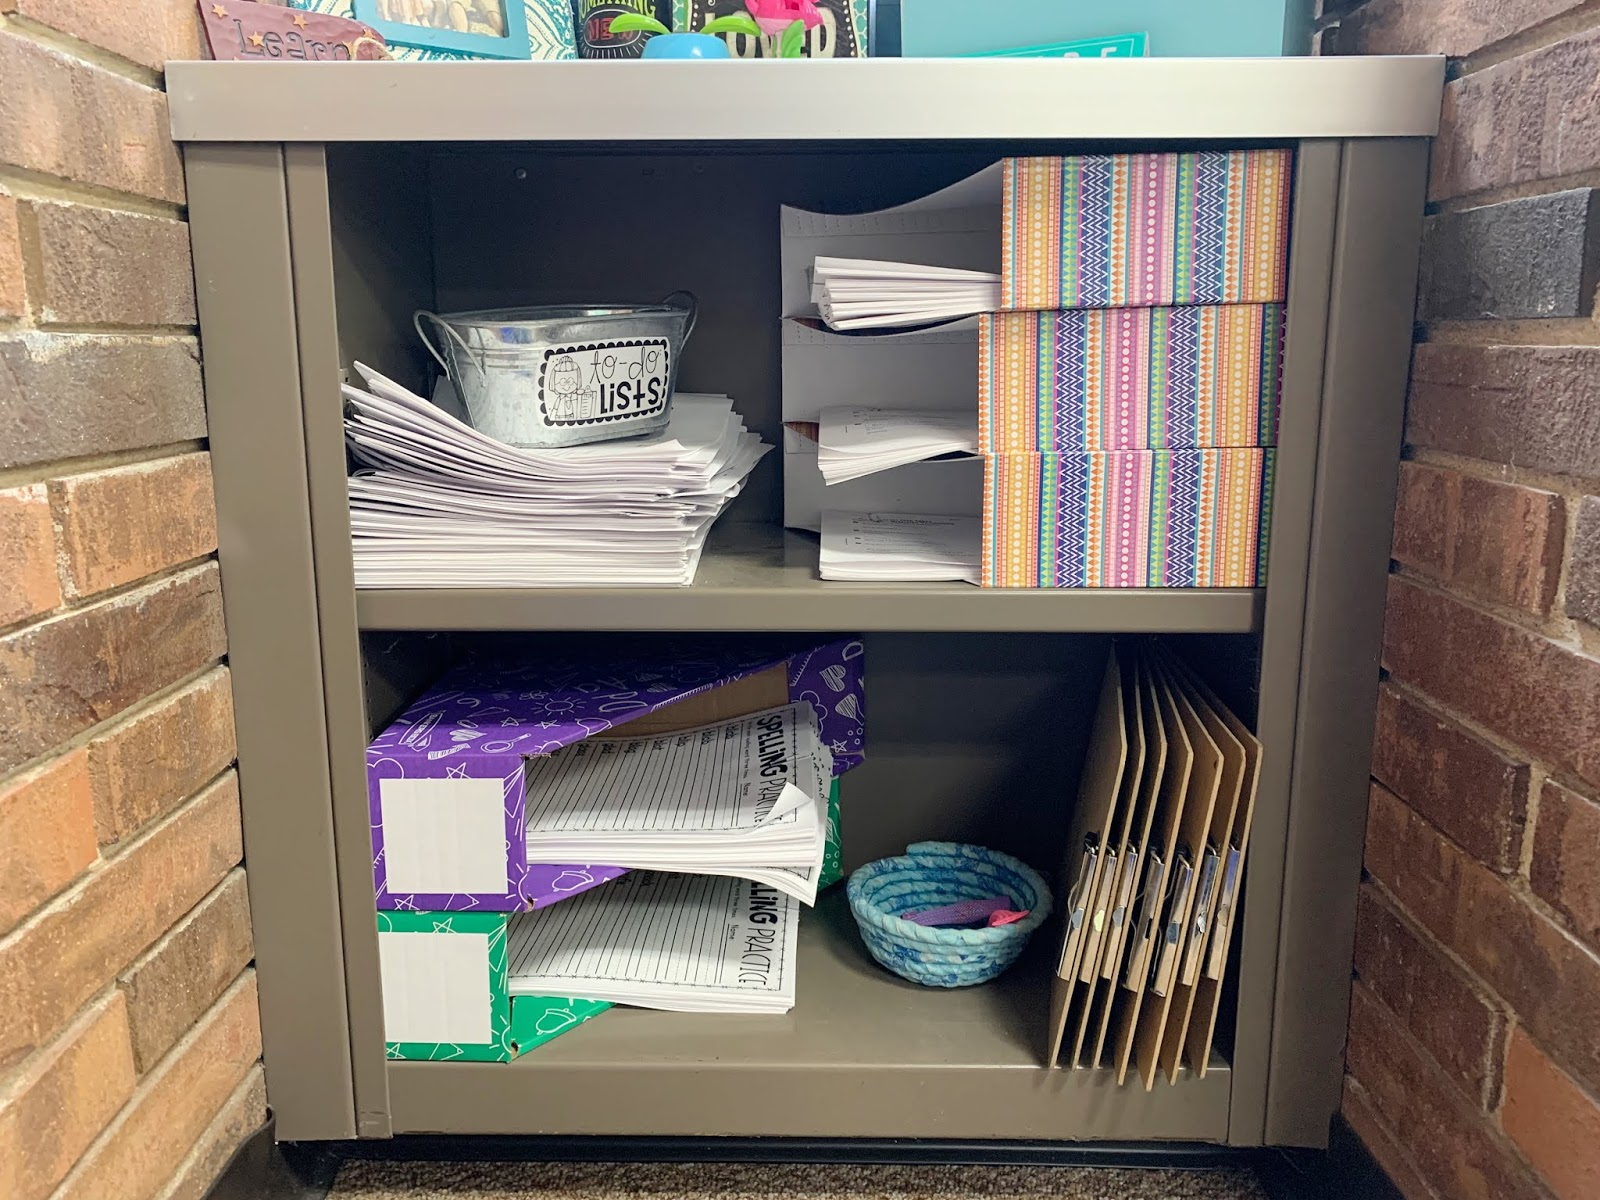 Image of shelf with multiple papers organized in folders